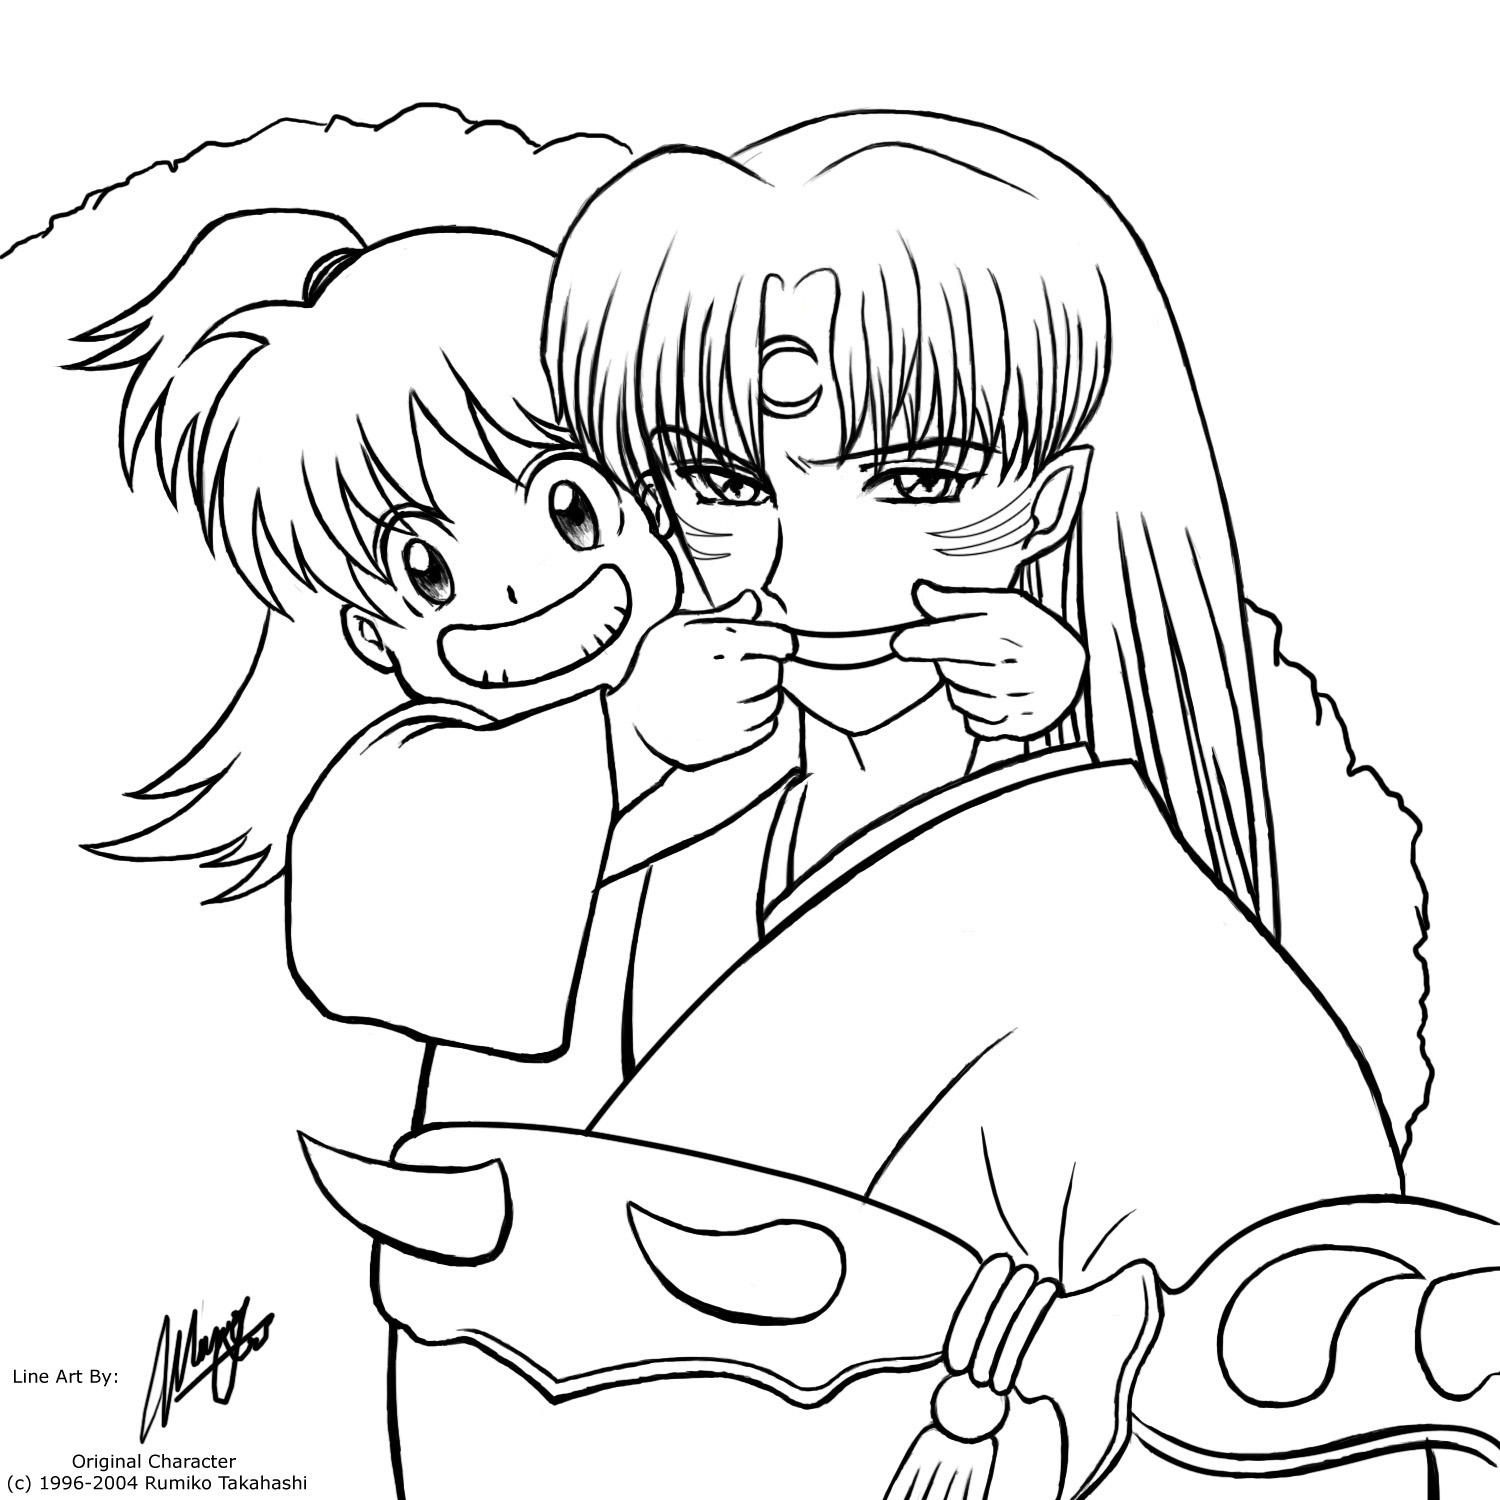 Sesshoumaru and Rin - Line Art by lilfuzz6